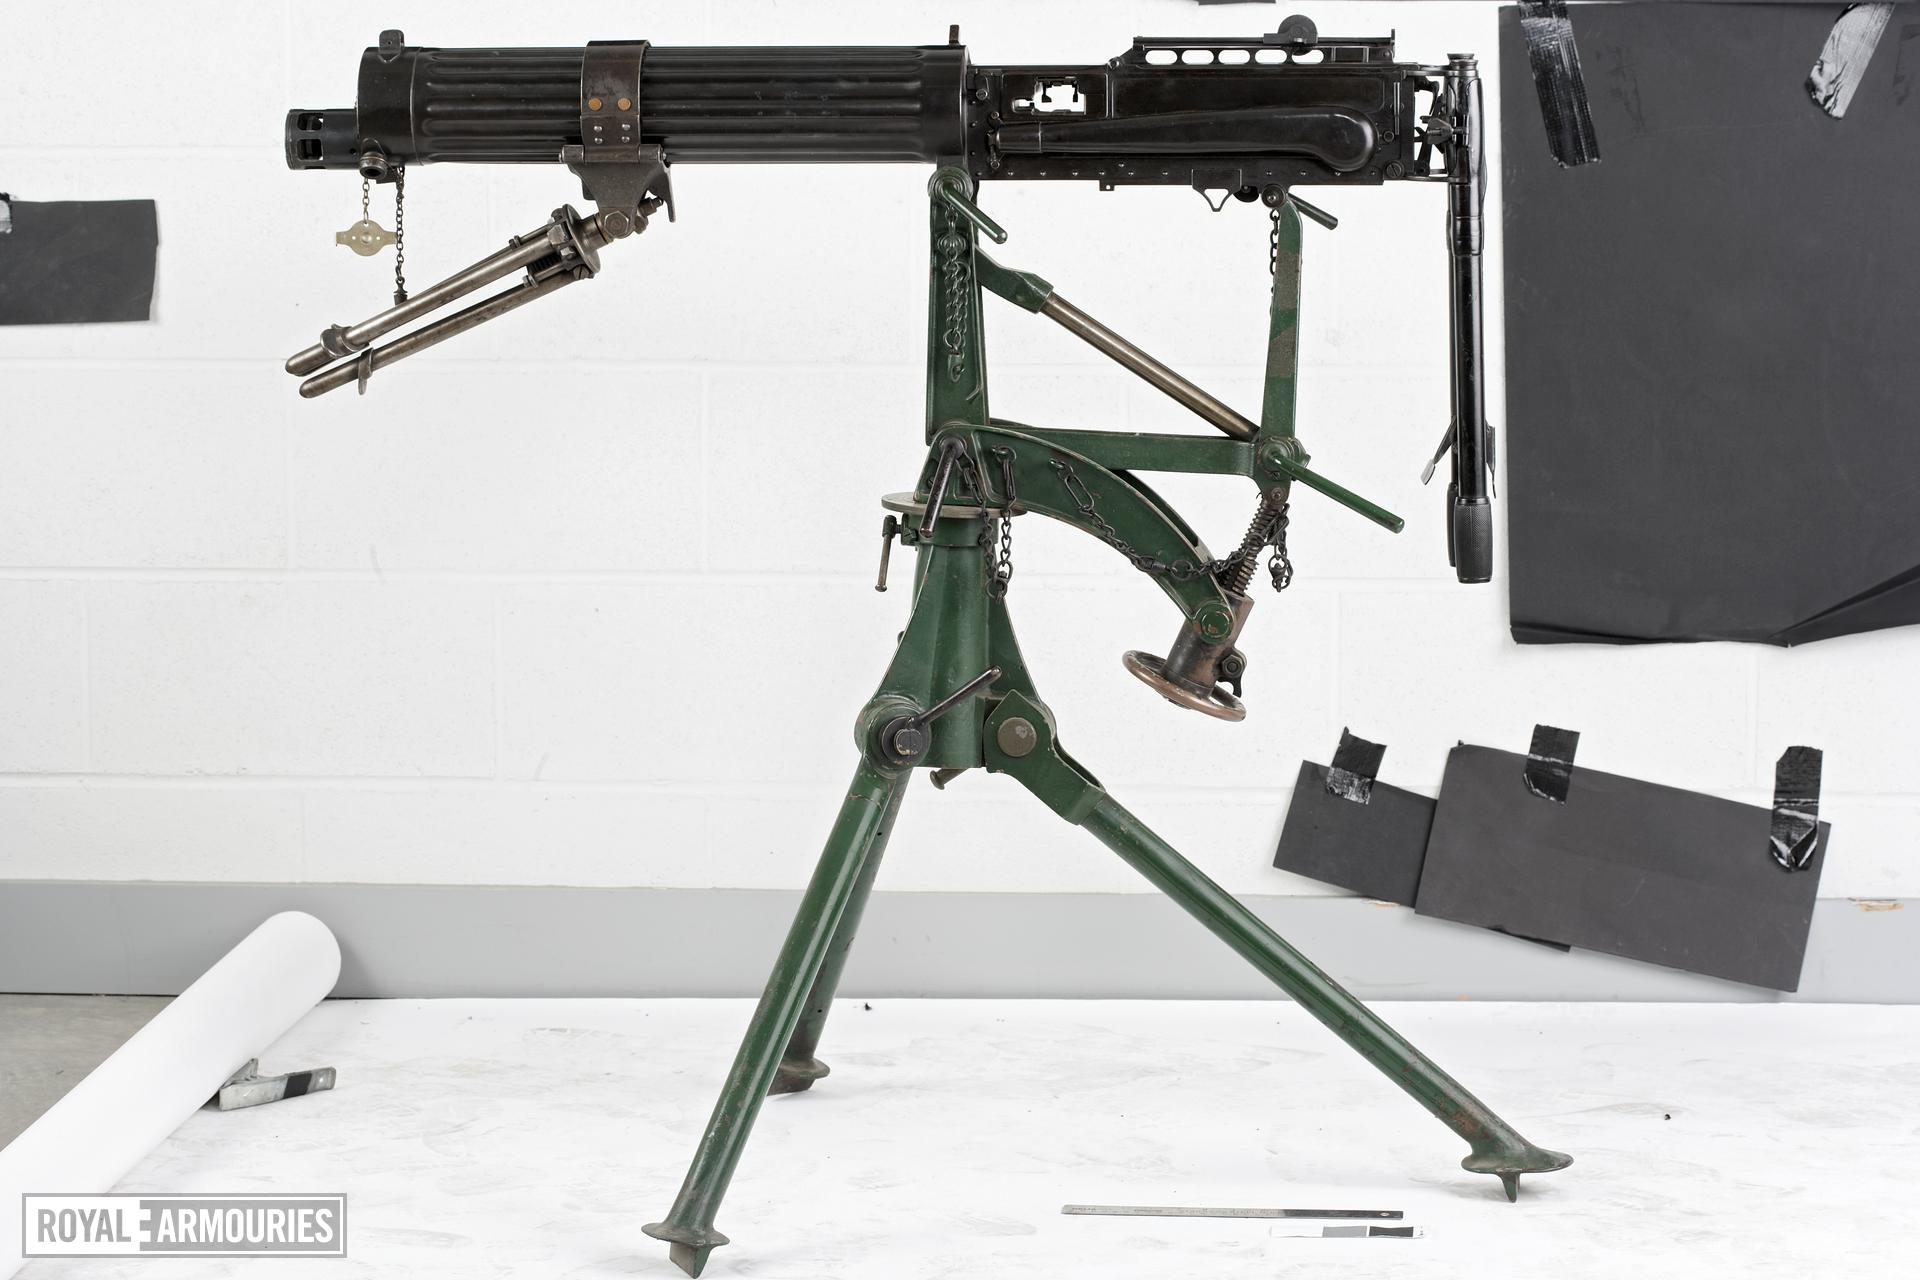 Mount for machine gun Tripod type for Vickers Mk.IV